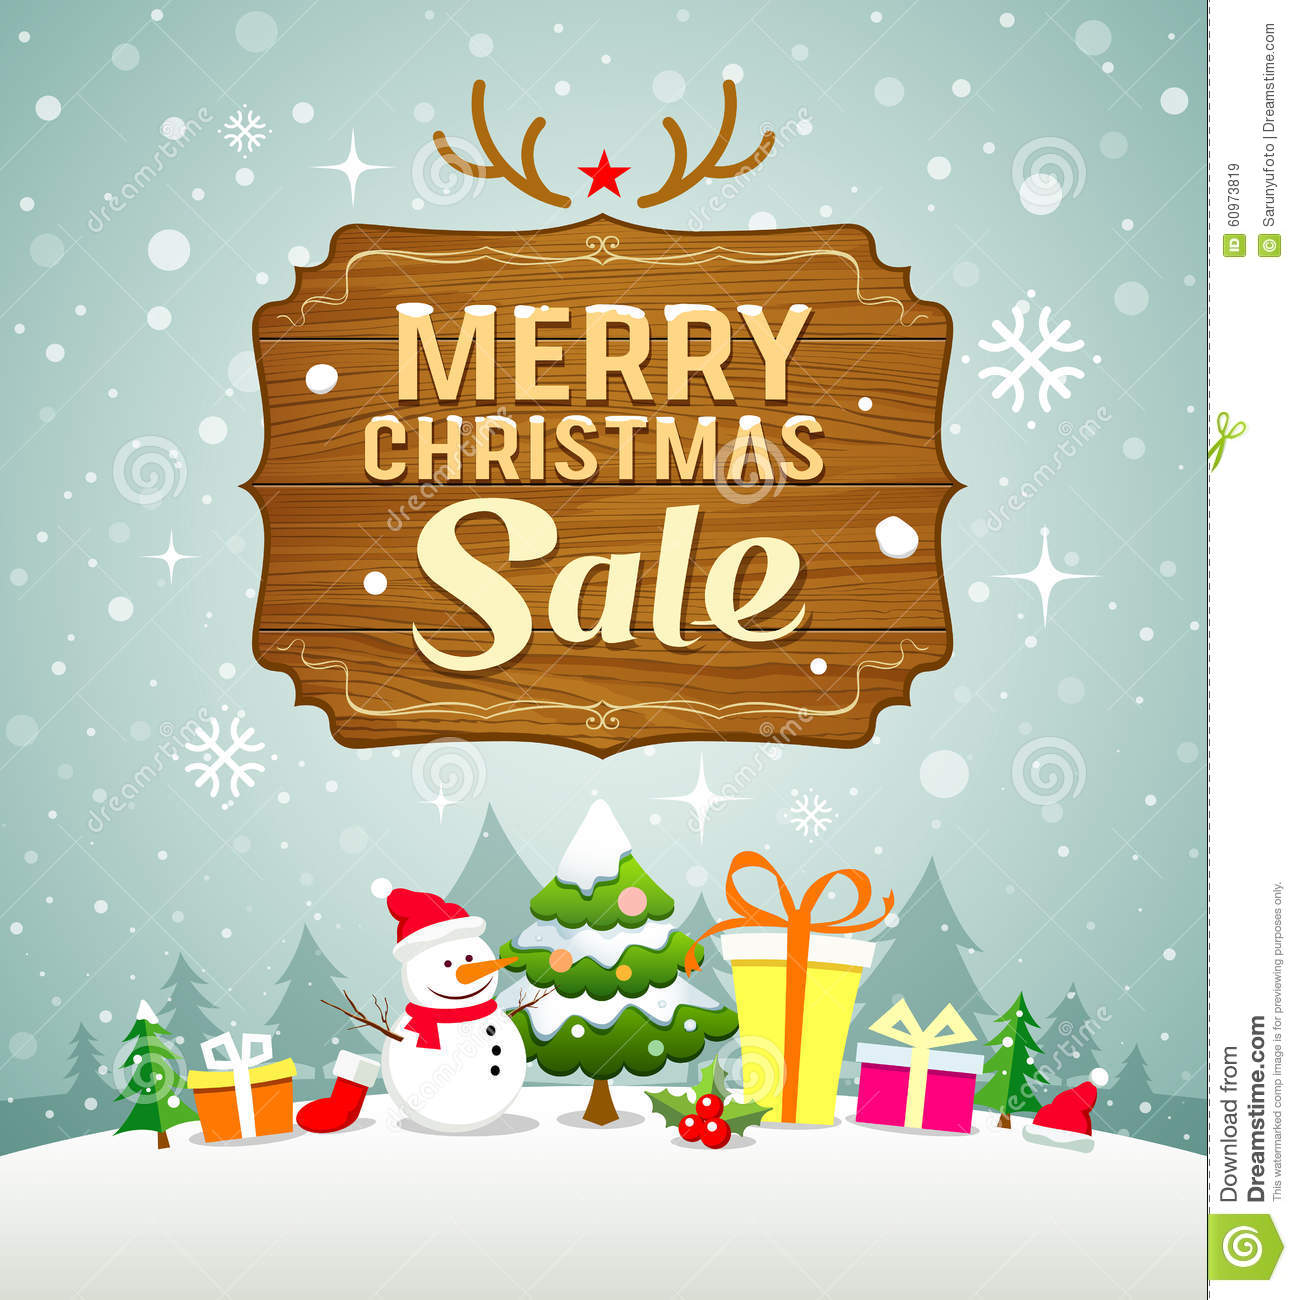 6eebca5f7414 Merry Christmas Sale Concept With Wood Board On Snow Stock Vector ...